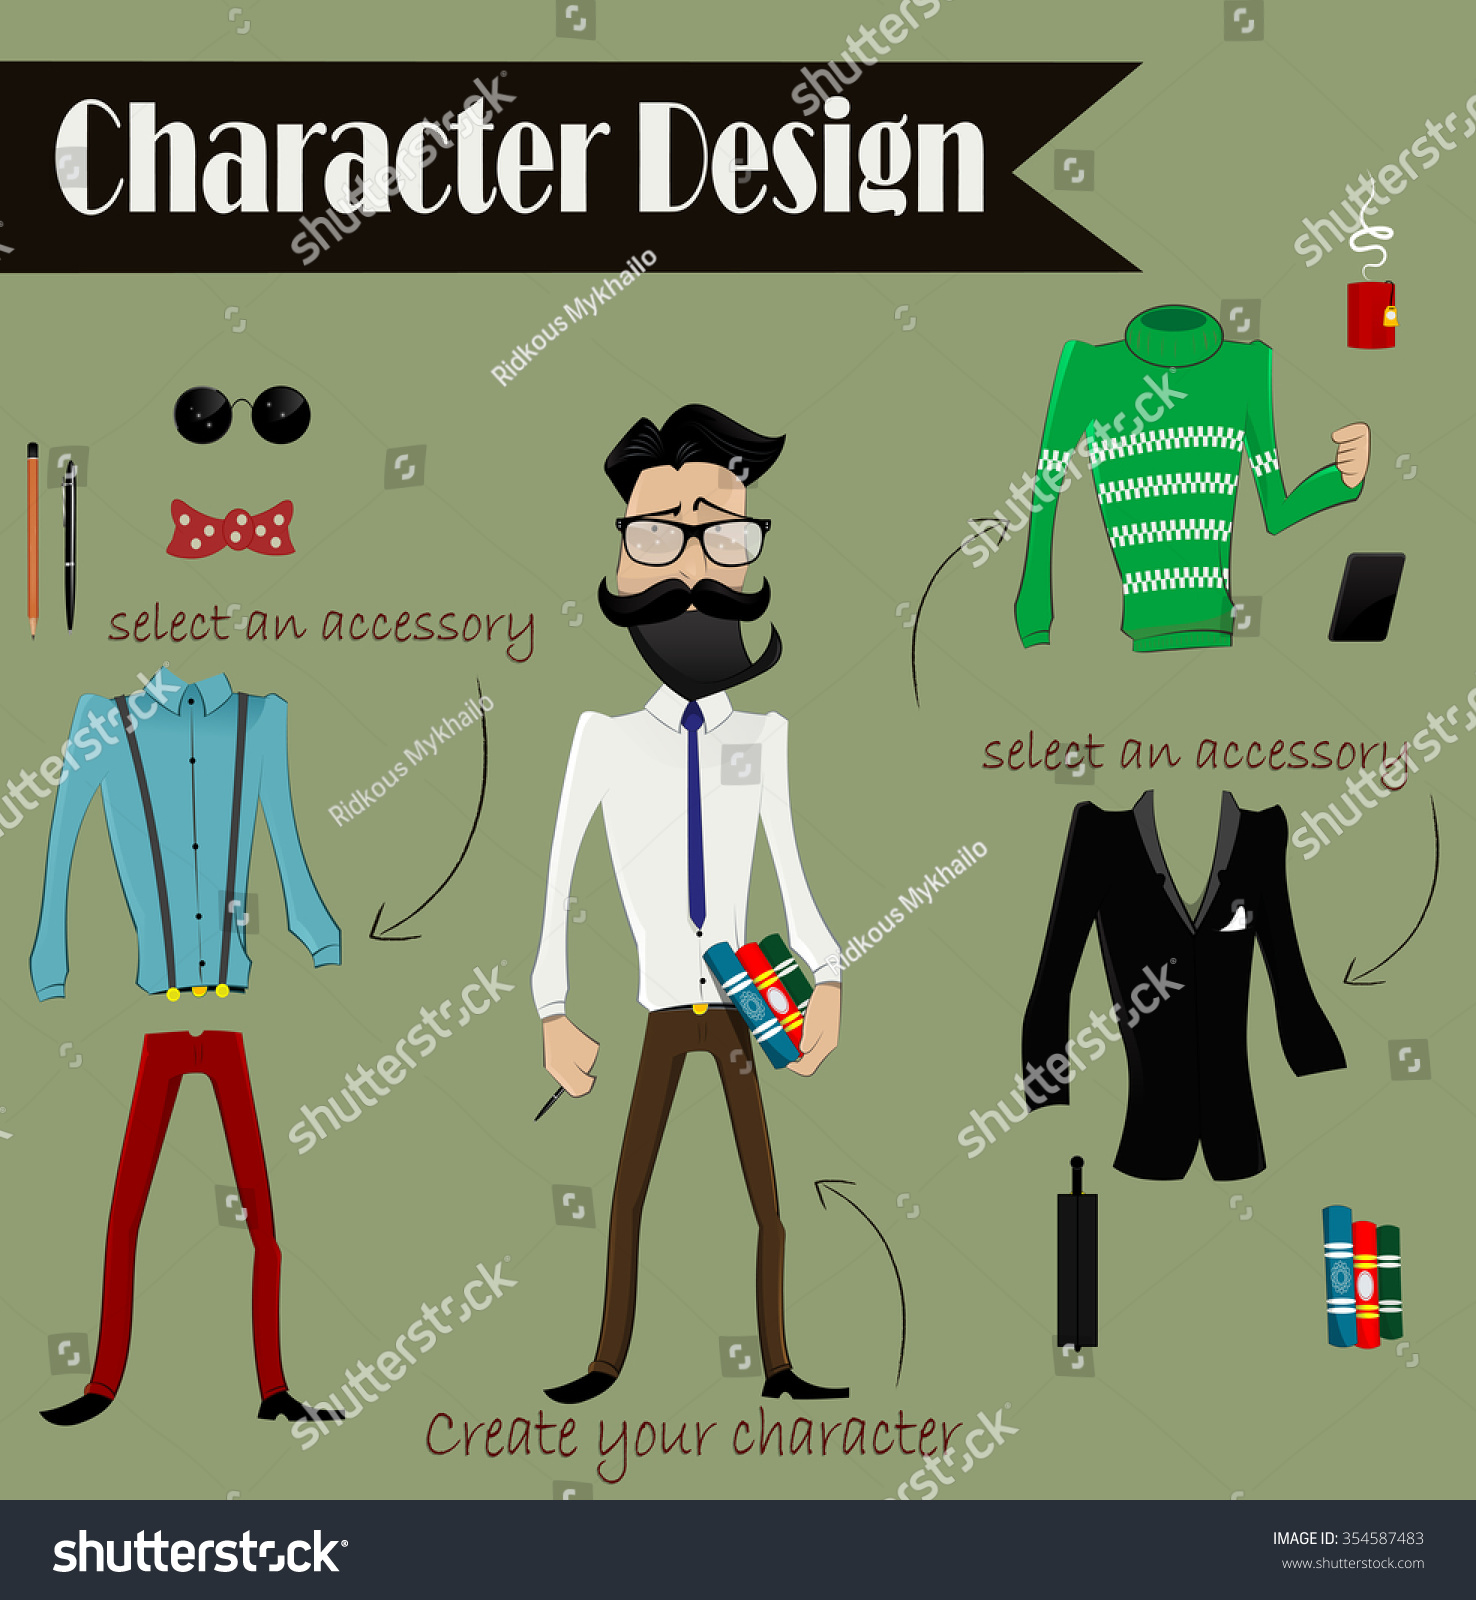 Character Design Elements : Hipster cartoon character boy design stock